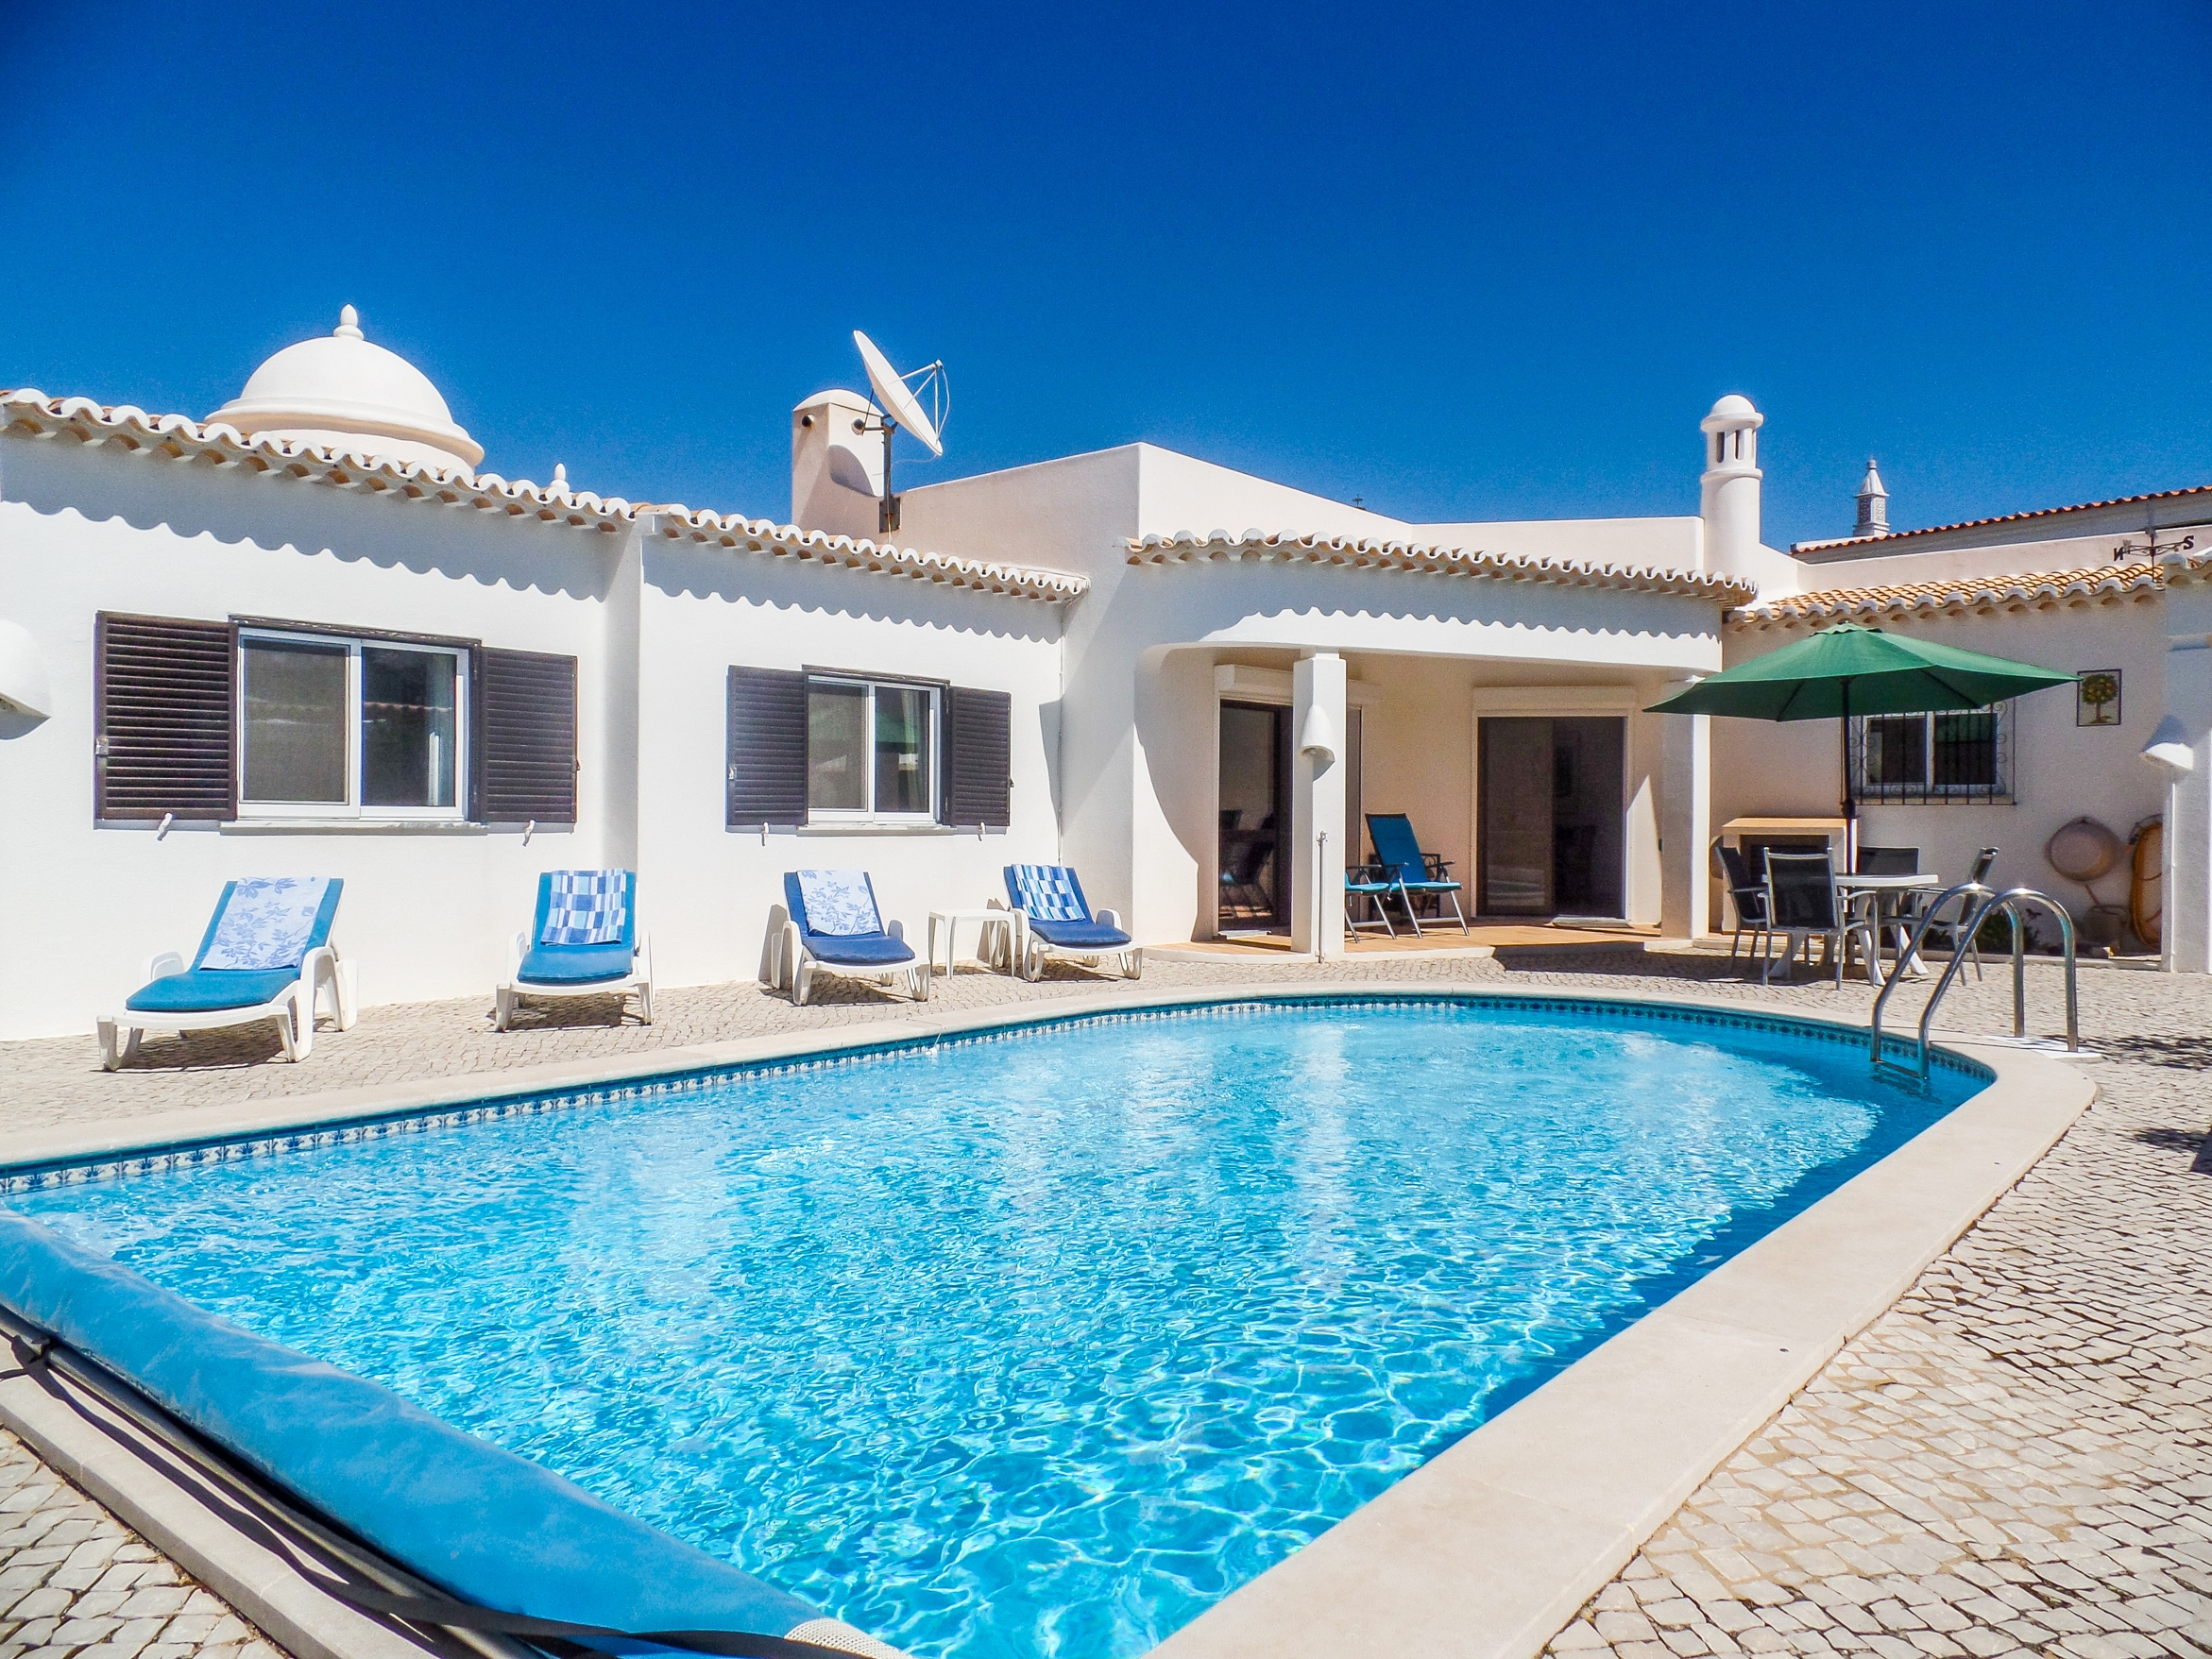 3 bedroomed Villa in a quiet location, Sesmarias, near Carvoeiro – West Central Algarve | VM910 3 bedroom villa with pool and distant sea view, in Sesmarias, near Carvoeiro. The property has a beautiful garden and plenty of space outside to relax and several separate alfresco dining areas.